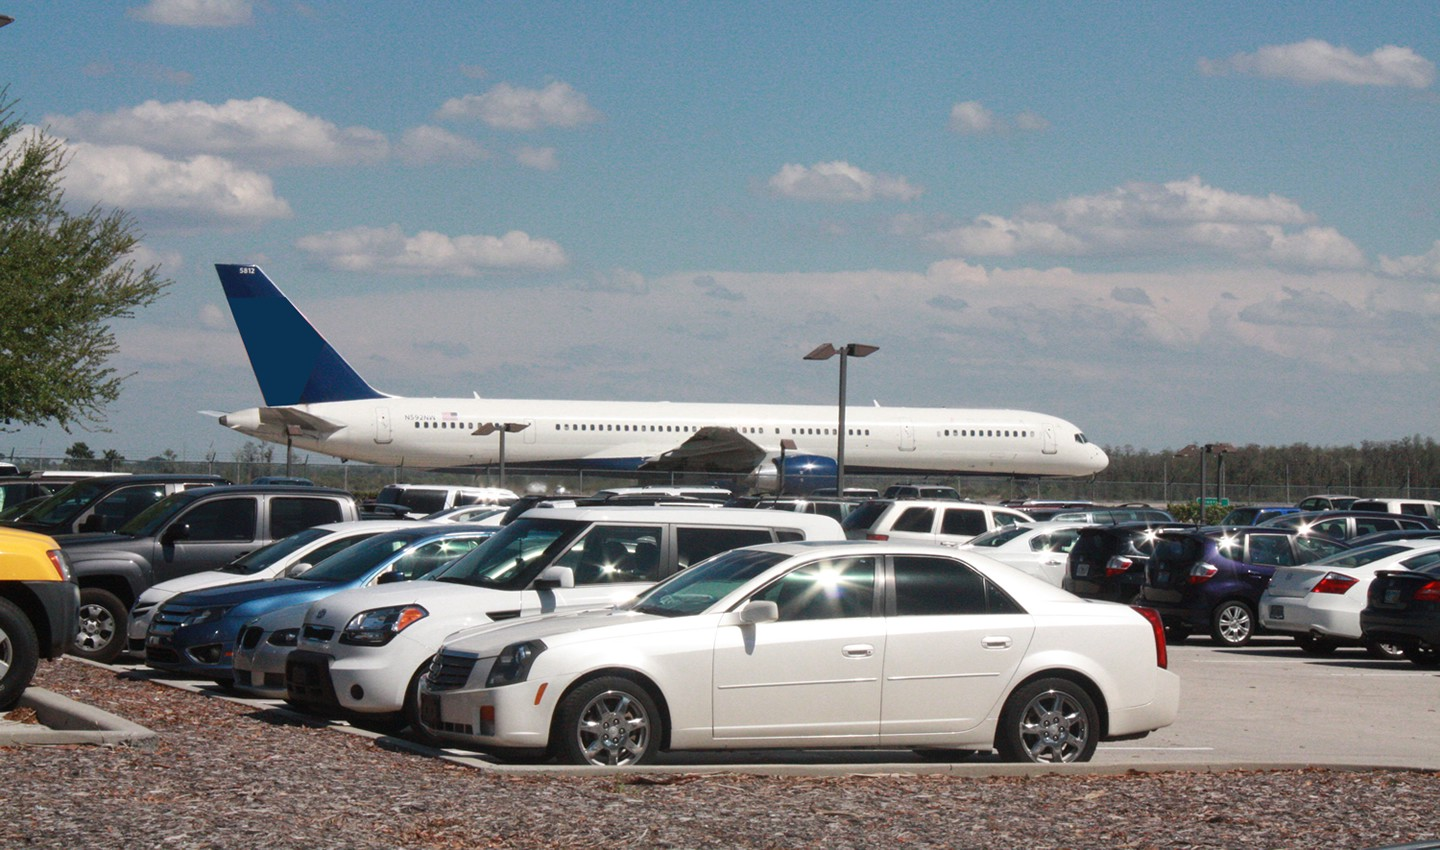 Obtain Lower Prices From The On-Airport Car Or Off-Airport Parking Car Parks?